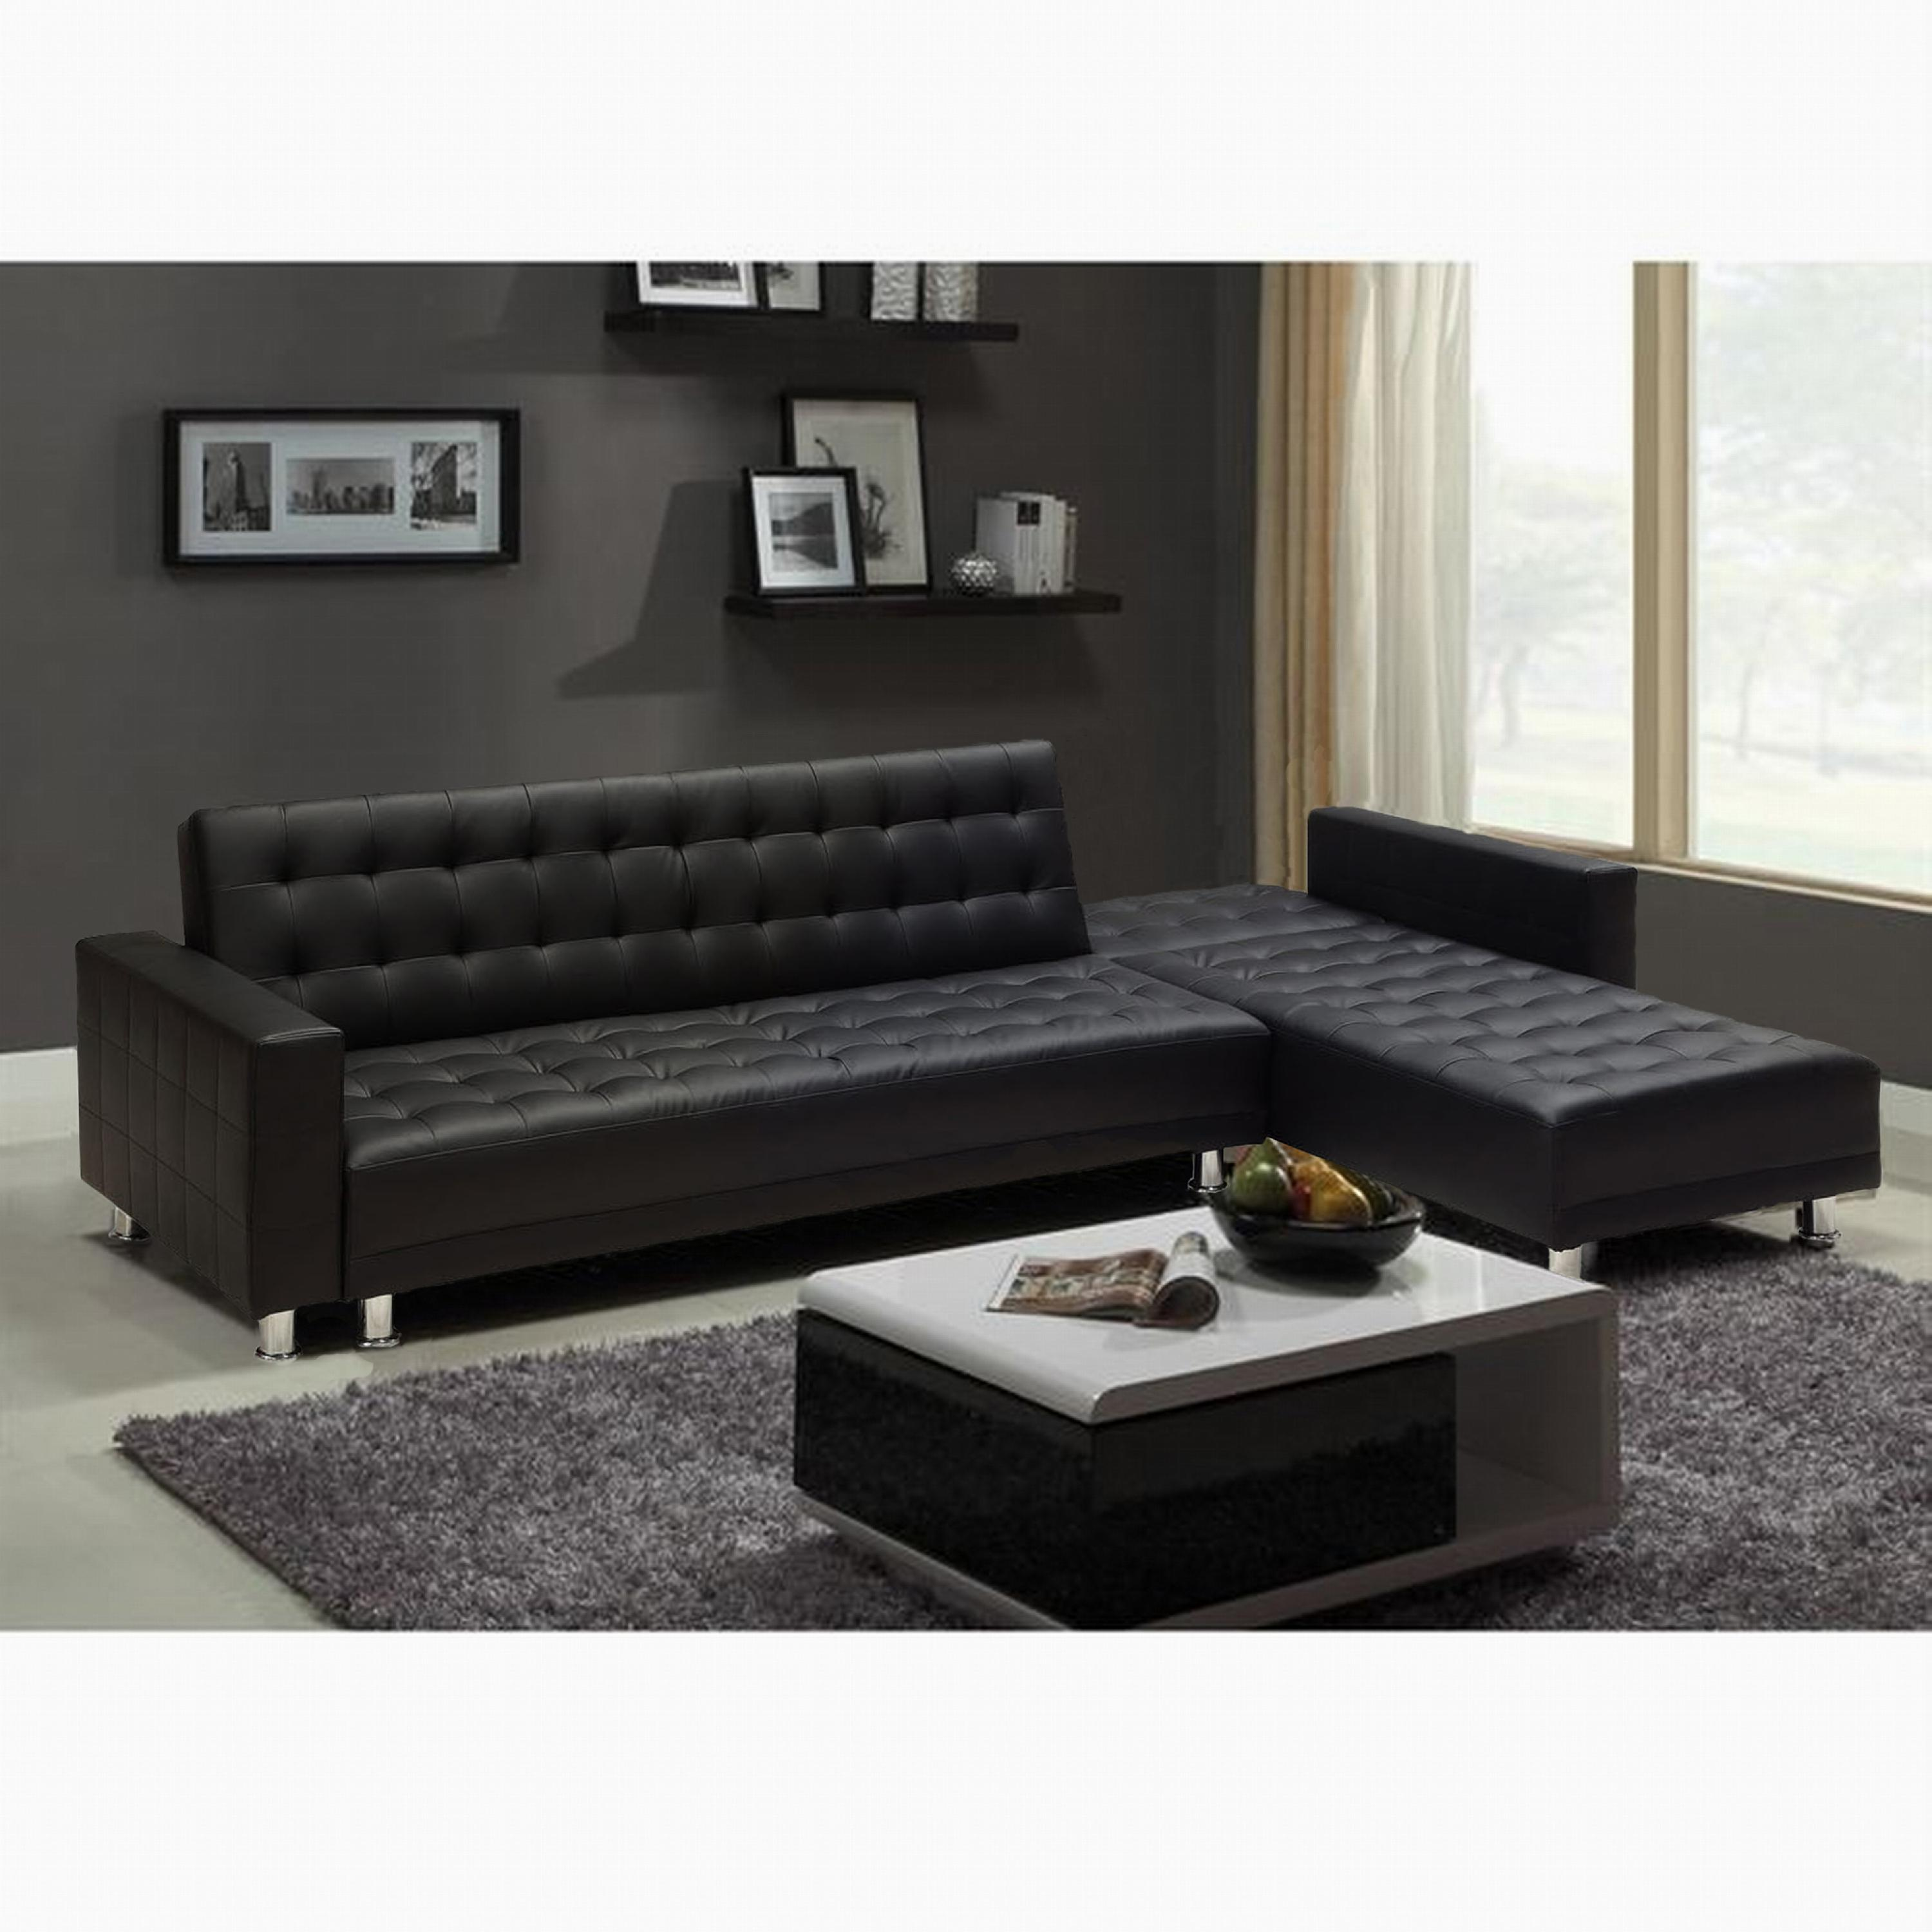 photos canap d 39 angle convertible pas cher simili cuir. Black Bedroom Furniture Sets. Home Design Ideas